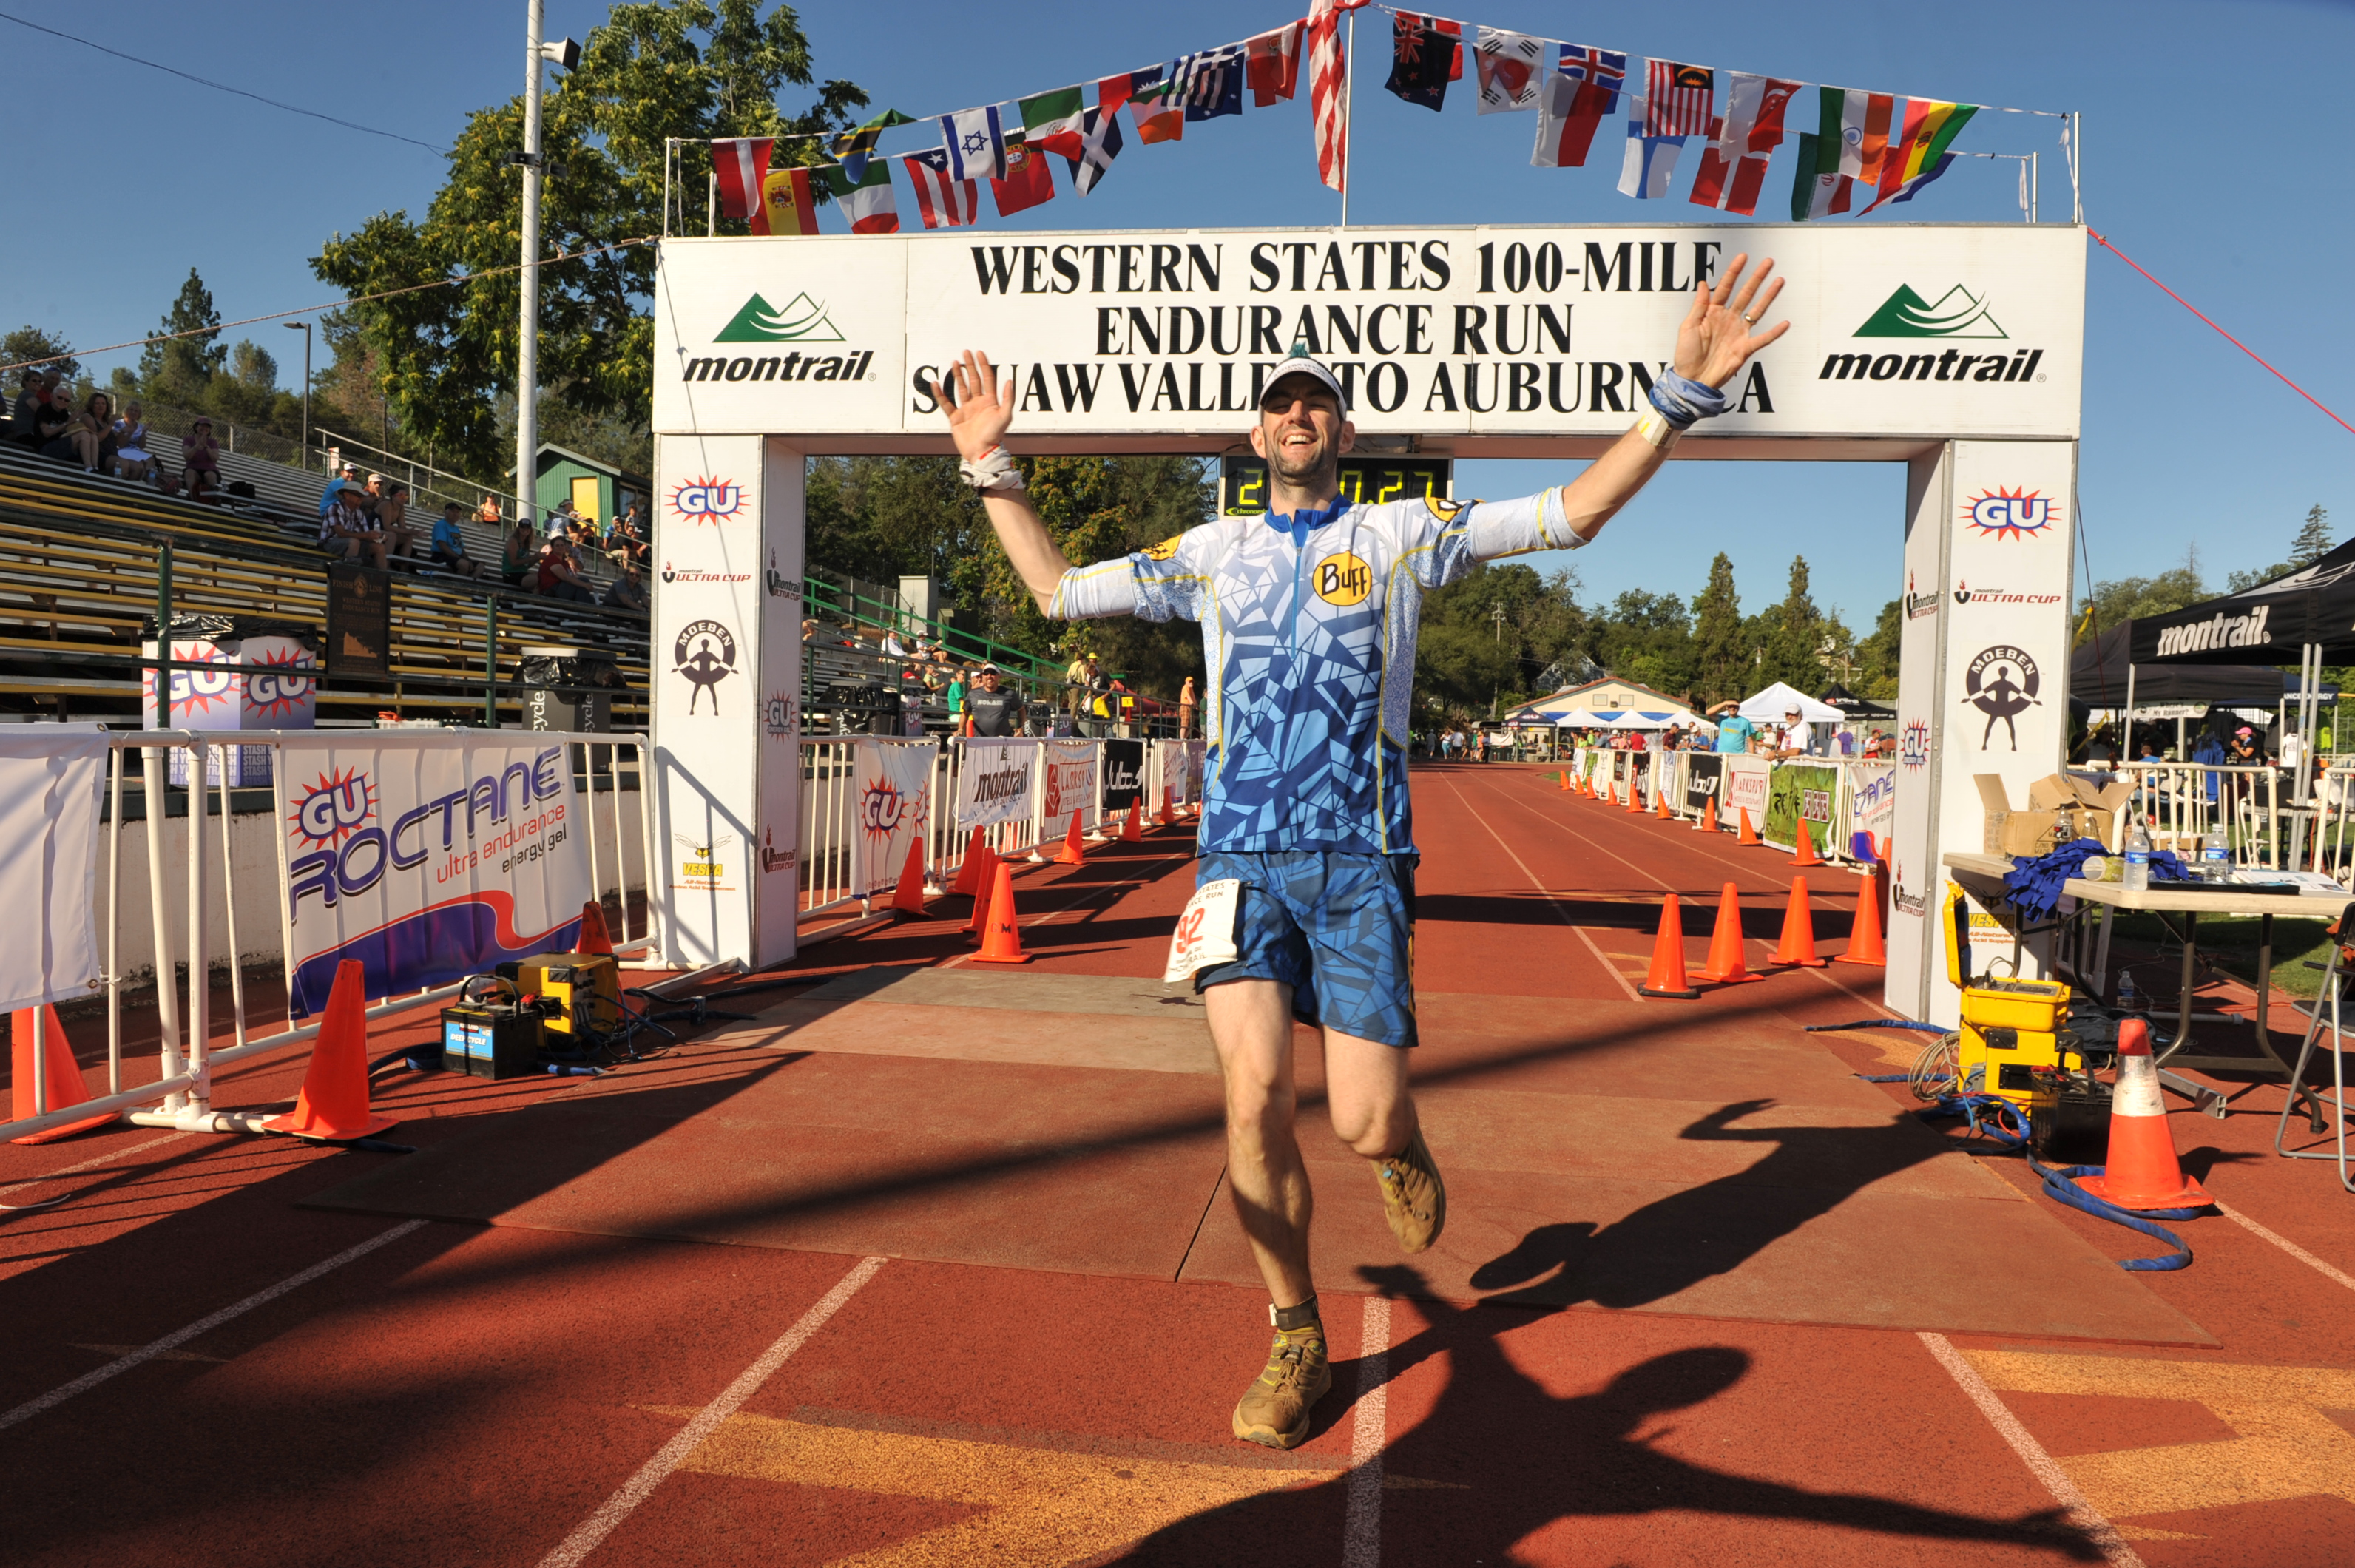 Stu at Western States 100 Miler in 2013